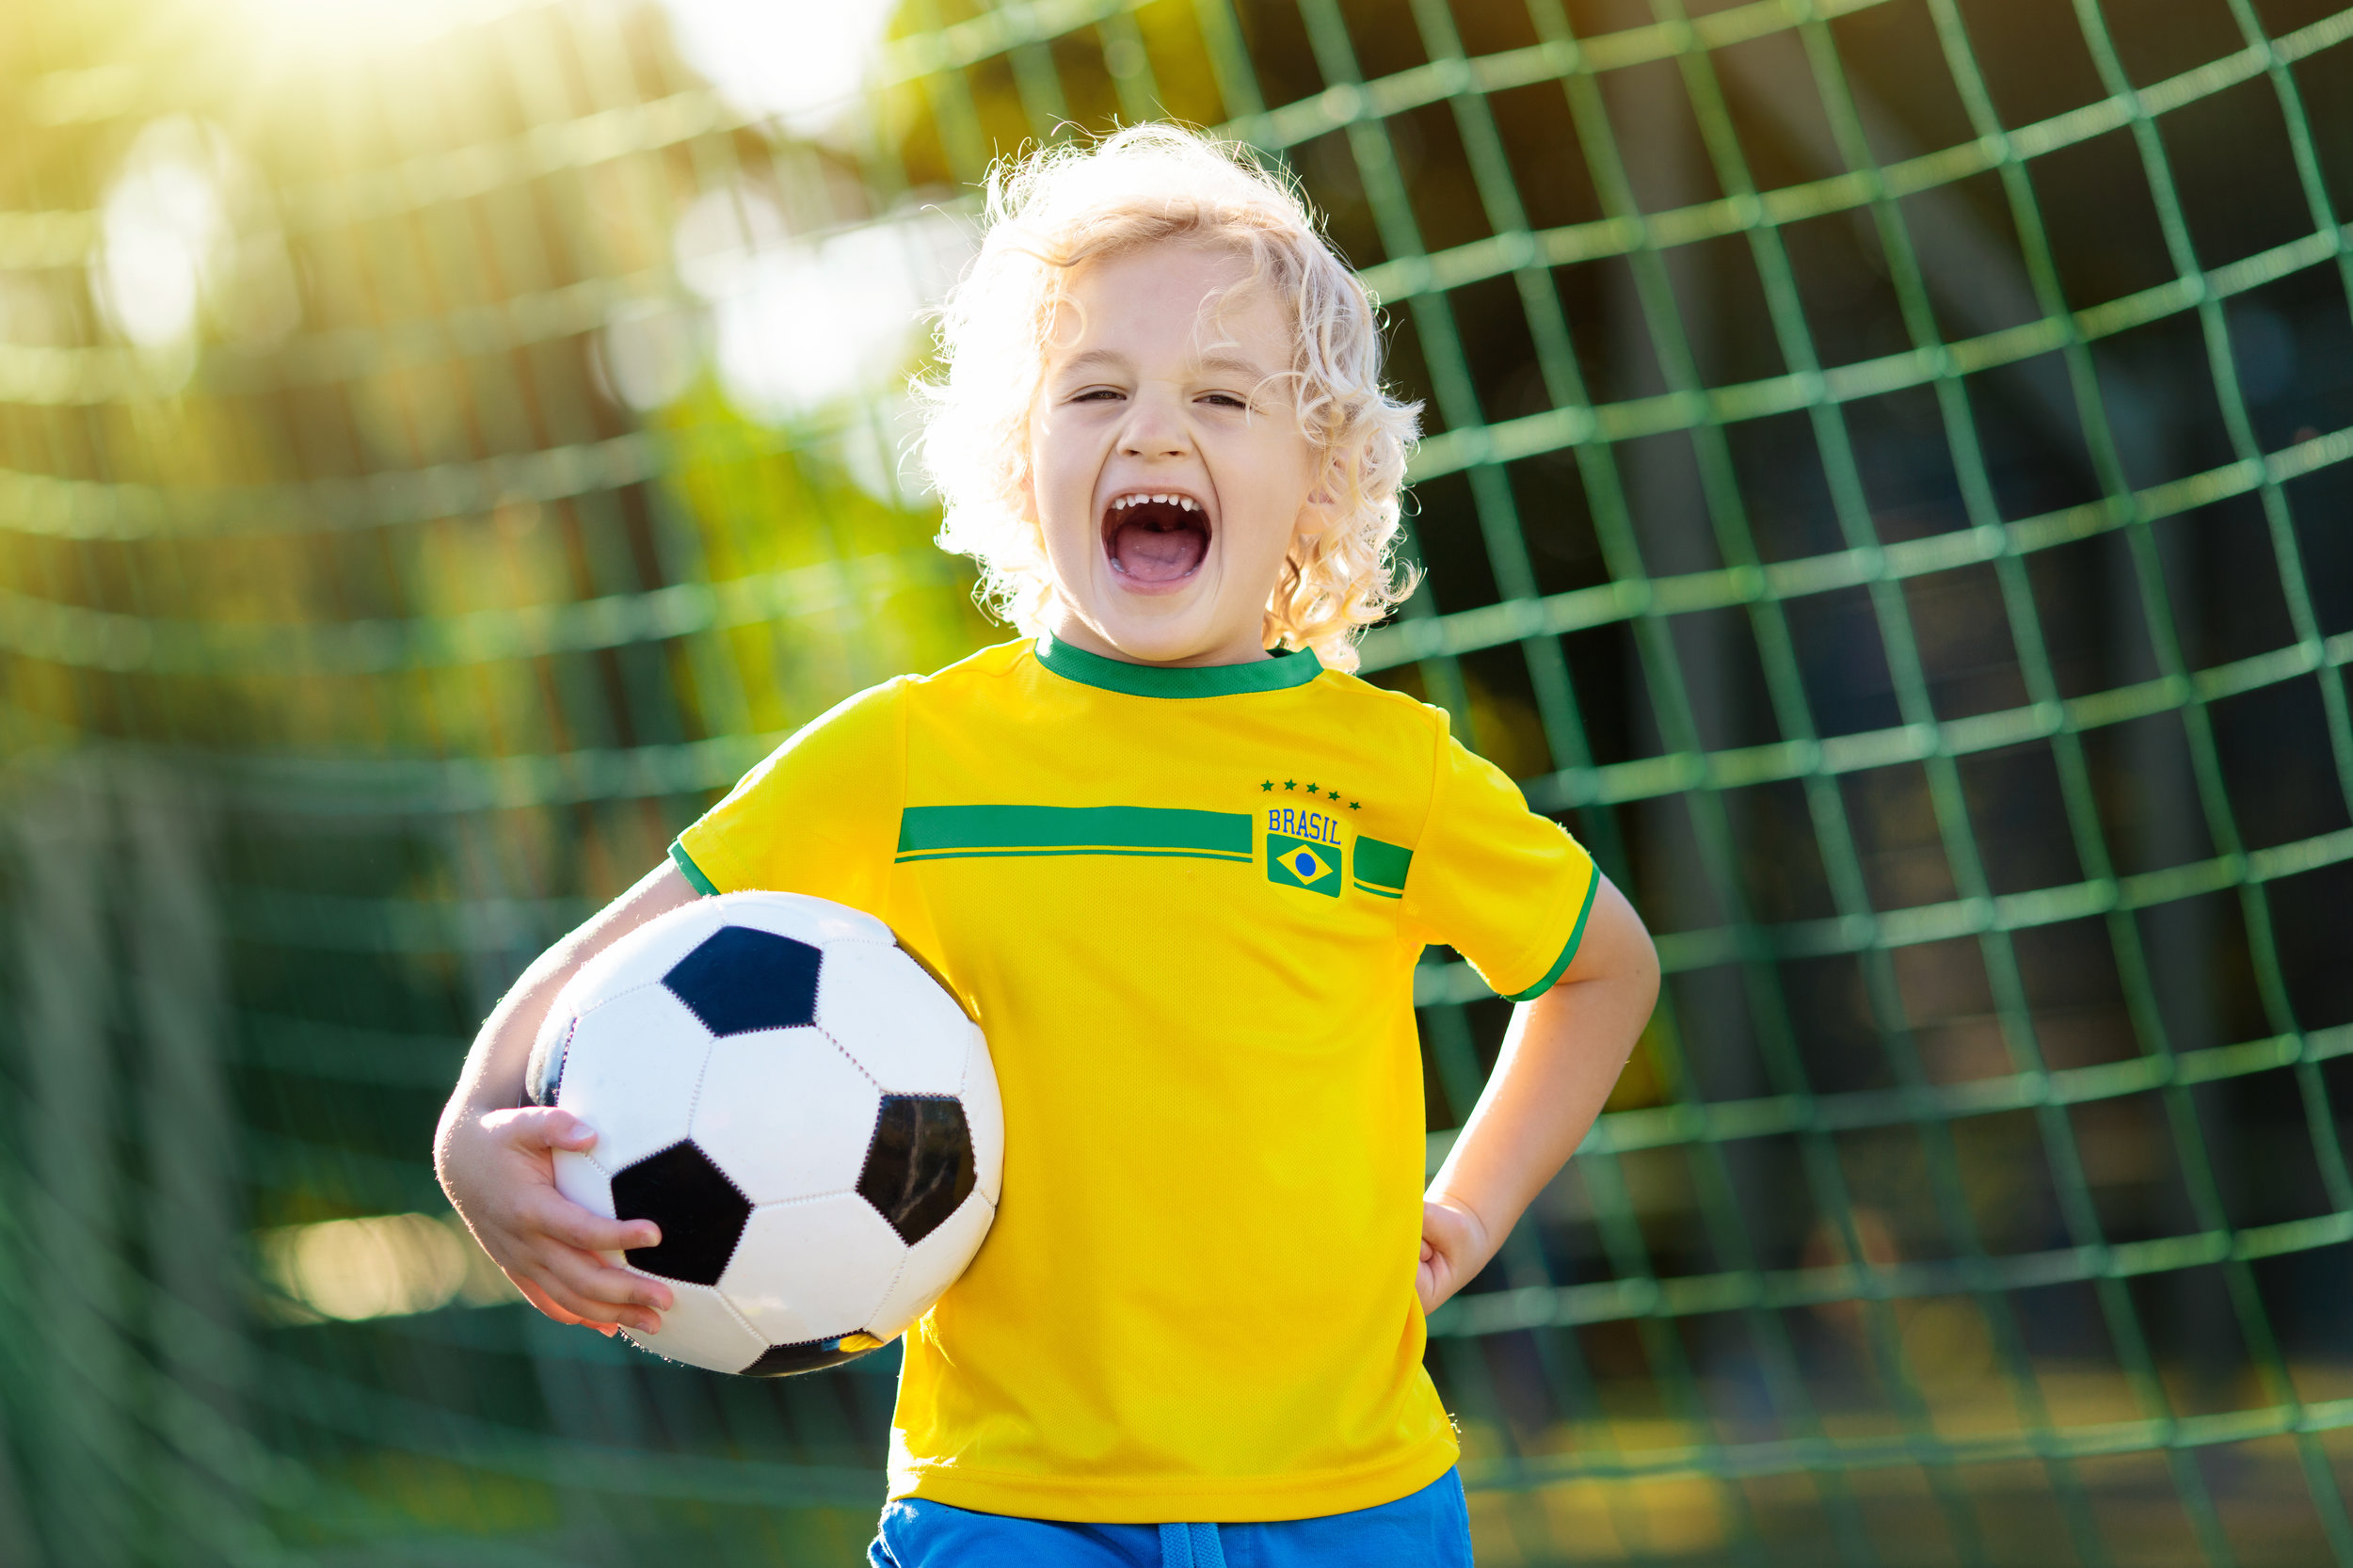 3 - 4 Years - Play games that develop listening skills, as well as agility, coordination, and balance